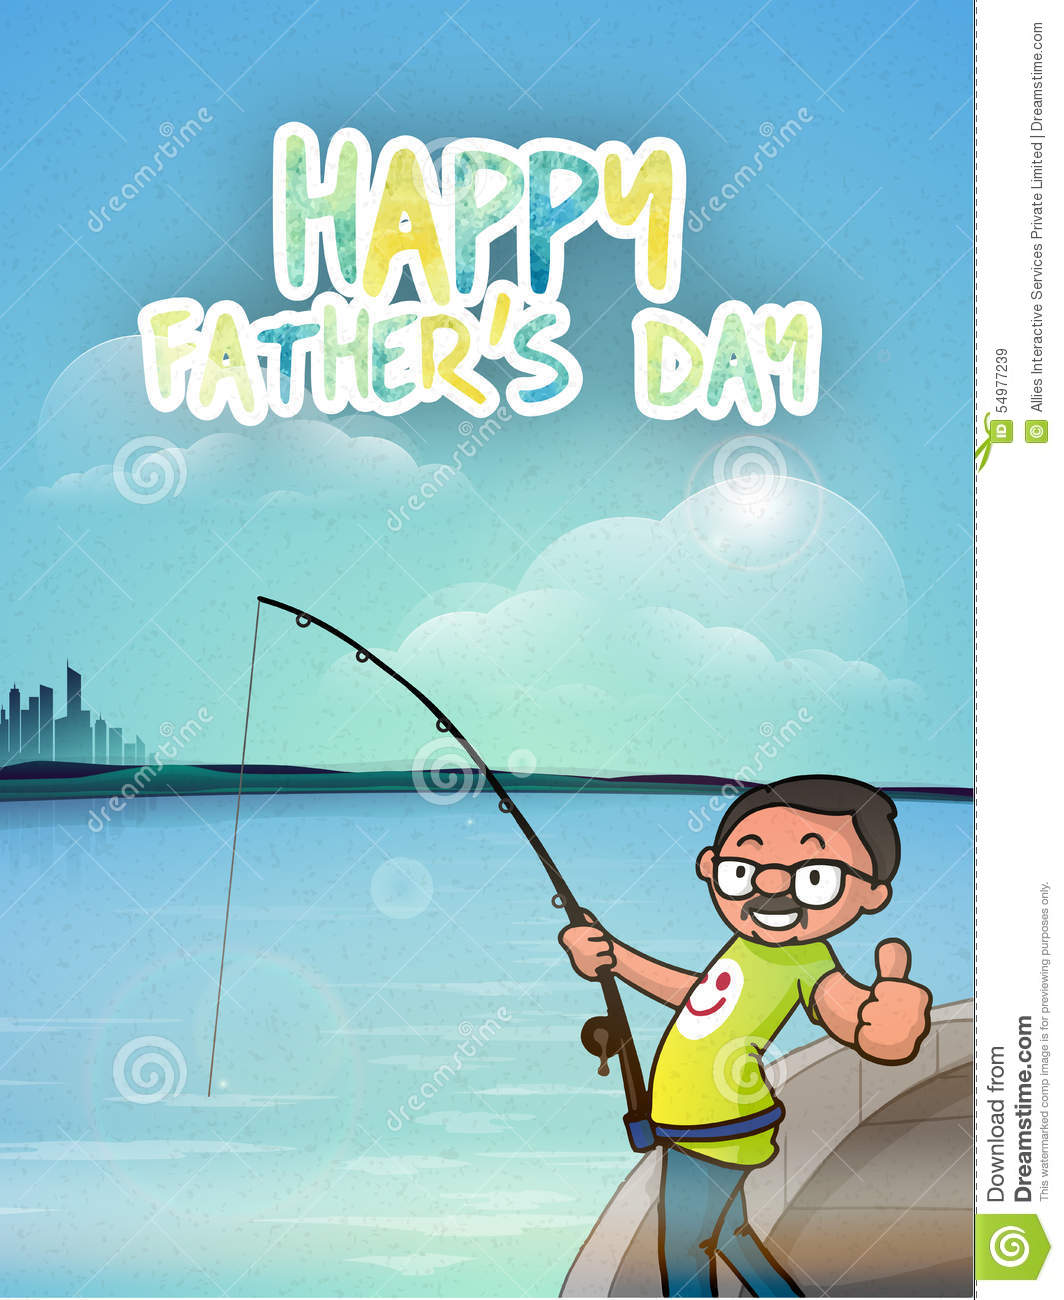 Happy fathers day celebration with cartoon man stock illustration happy fathers day celebration with cartoon man sciox Image collections